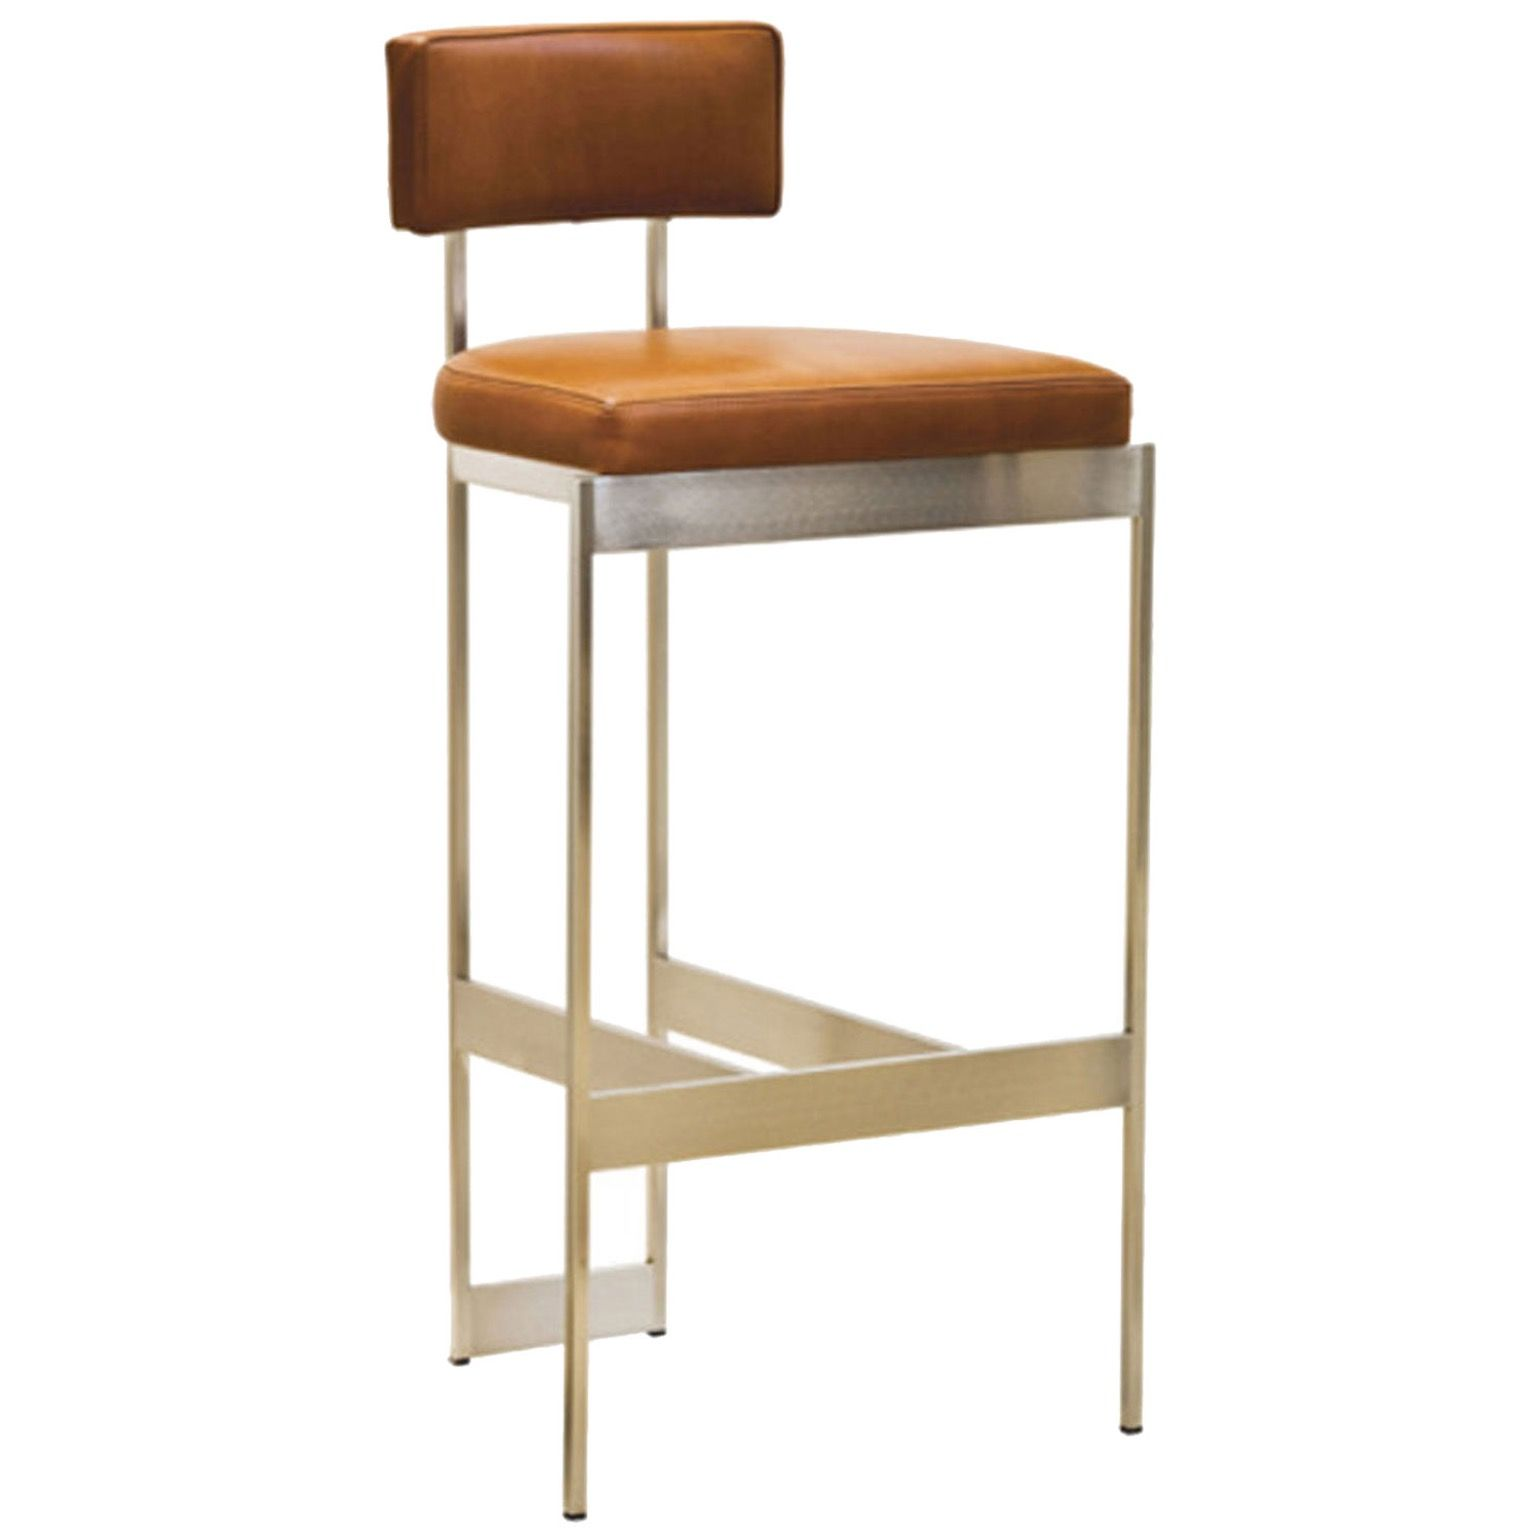 Alto Stool By Powell Bonnell Transitional, Midcentury Modern, Leather, Metal,